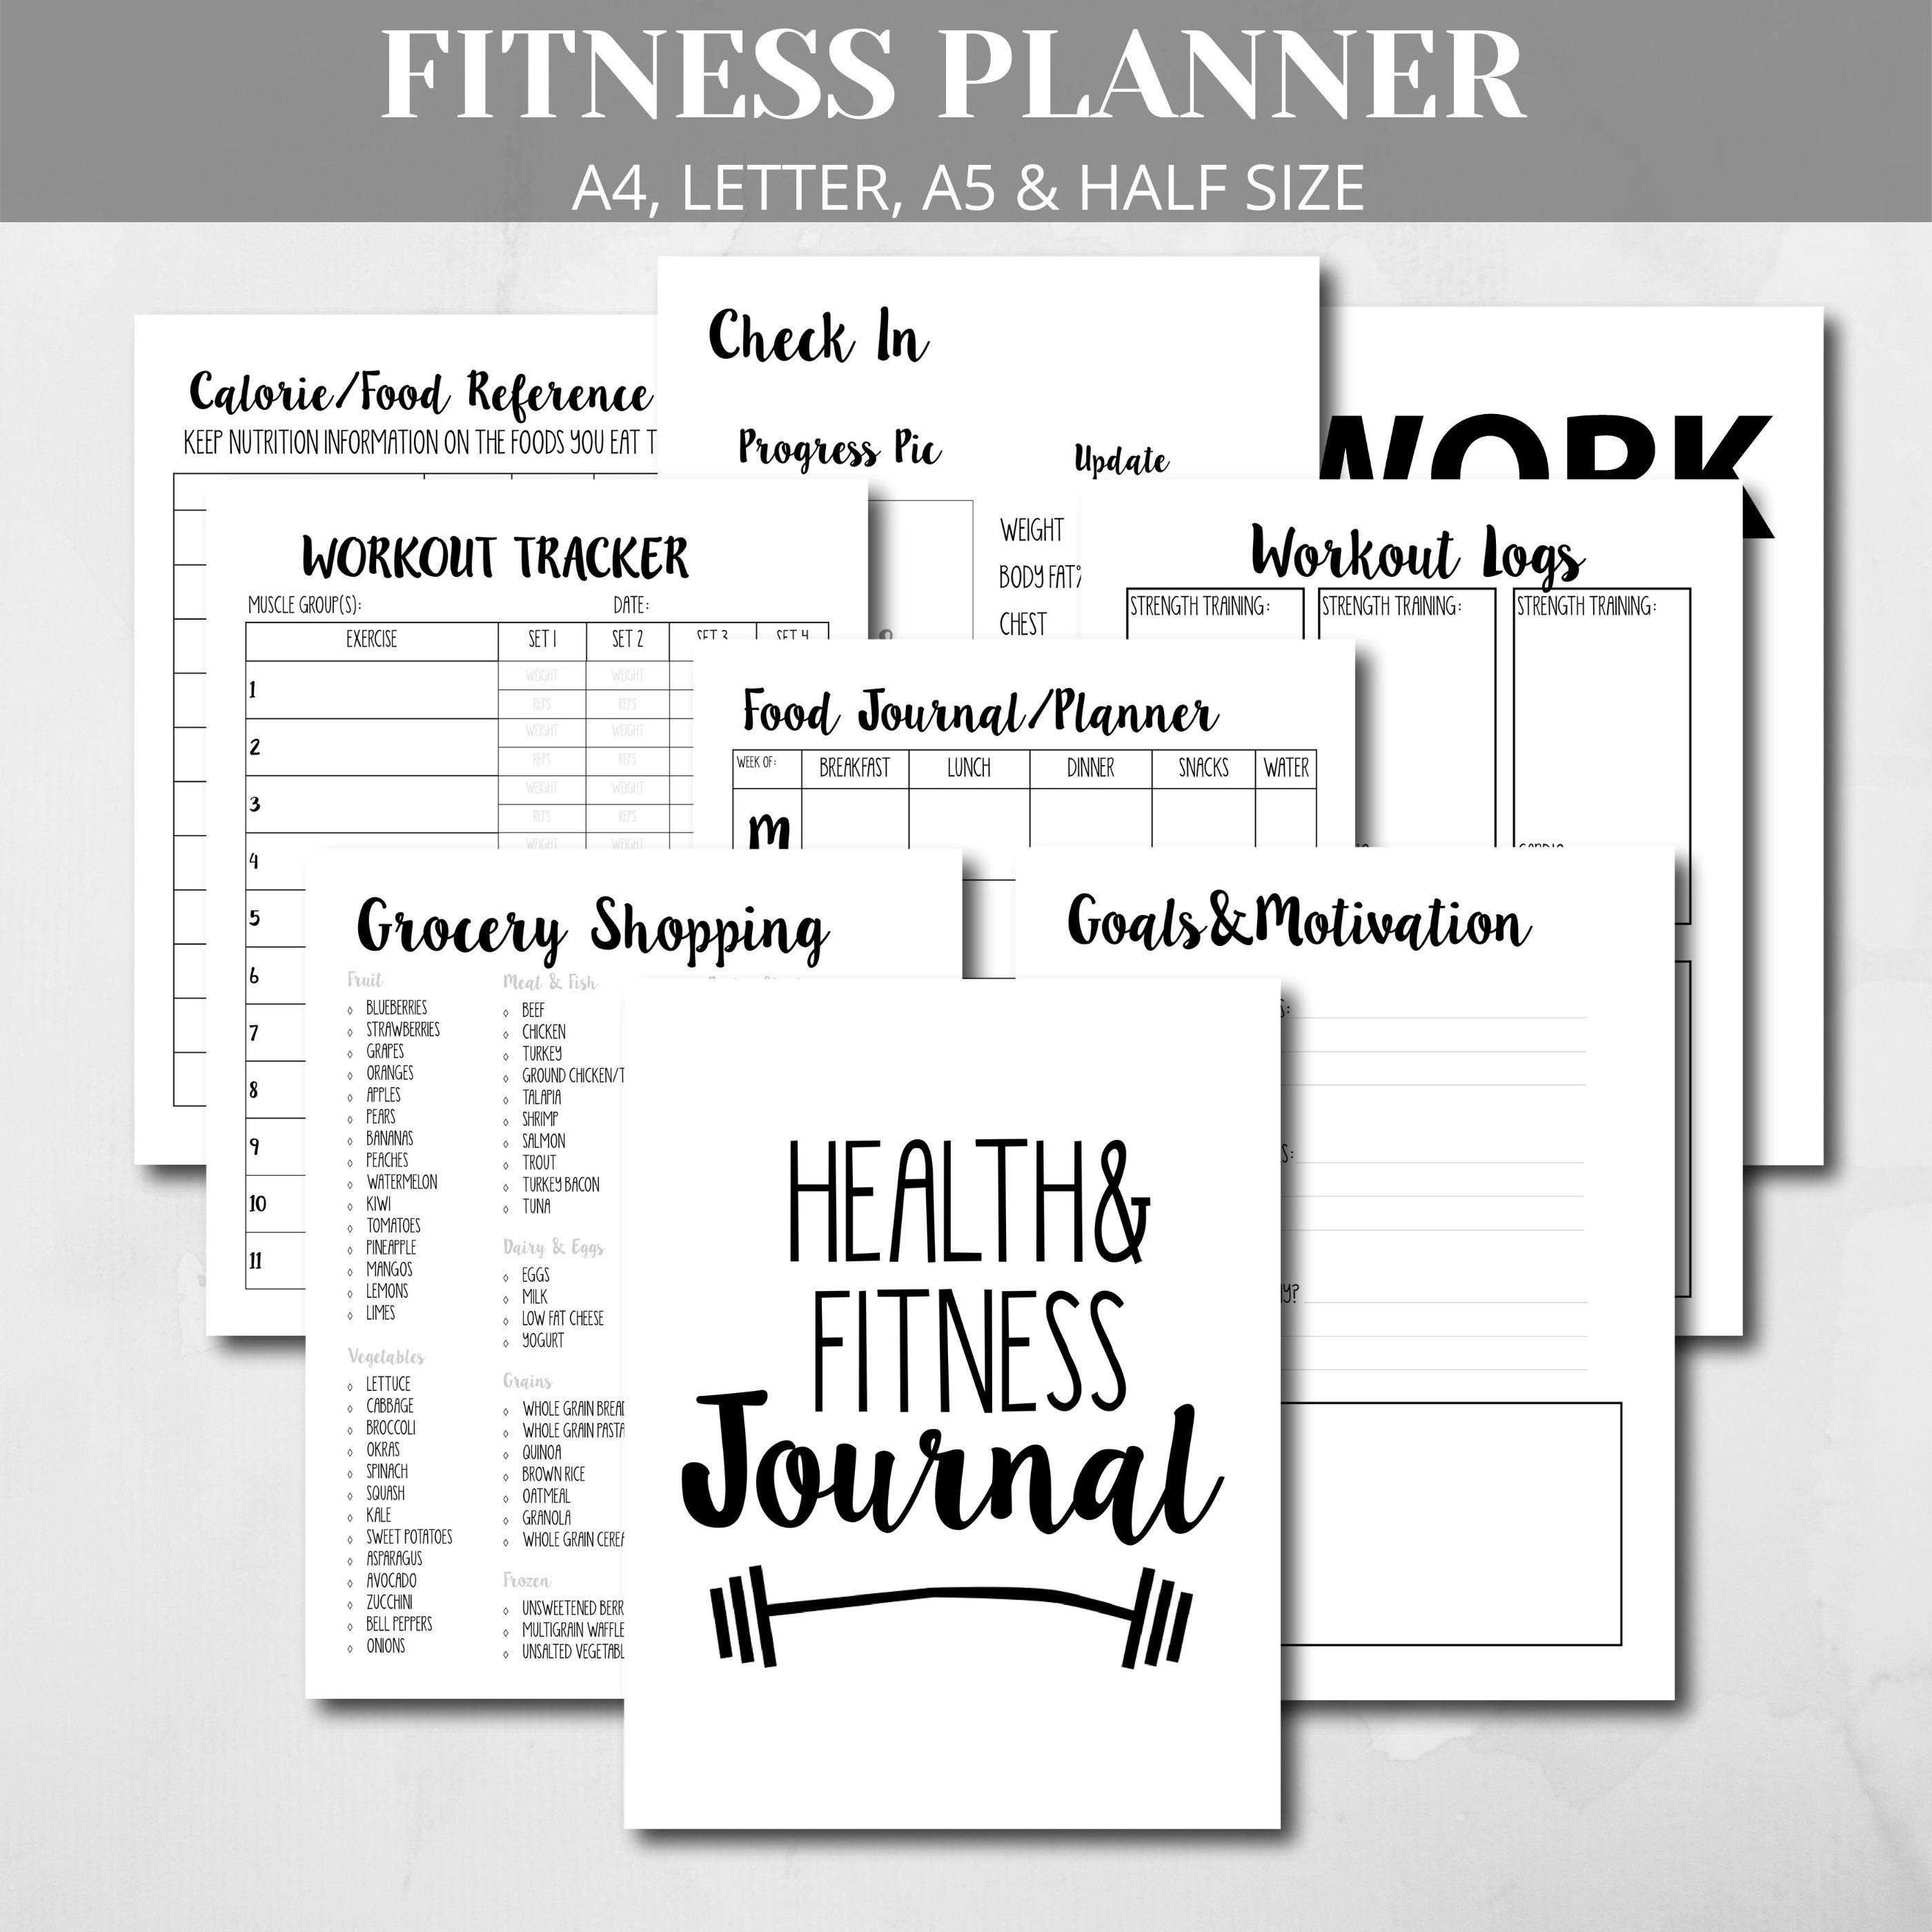 Fitness Planner Printable, Health Fitness Workout Log, Workout Planner, Fitness Journal, Weight Loss Planner, Health Tracker A4, A5 Letter